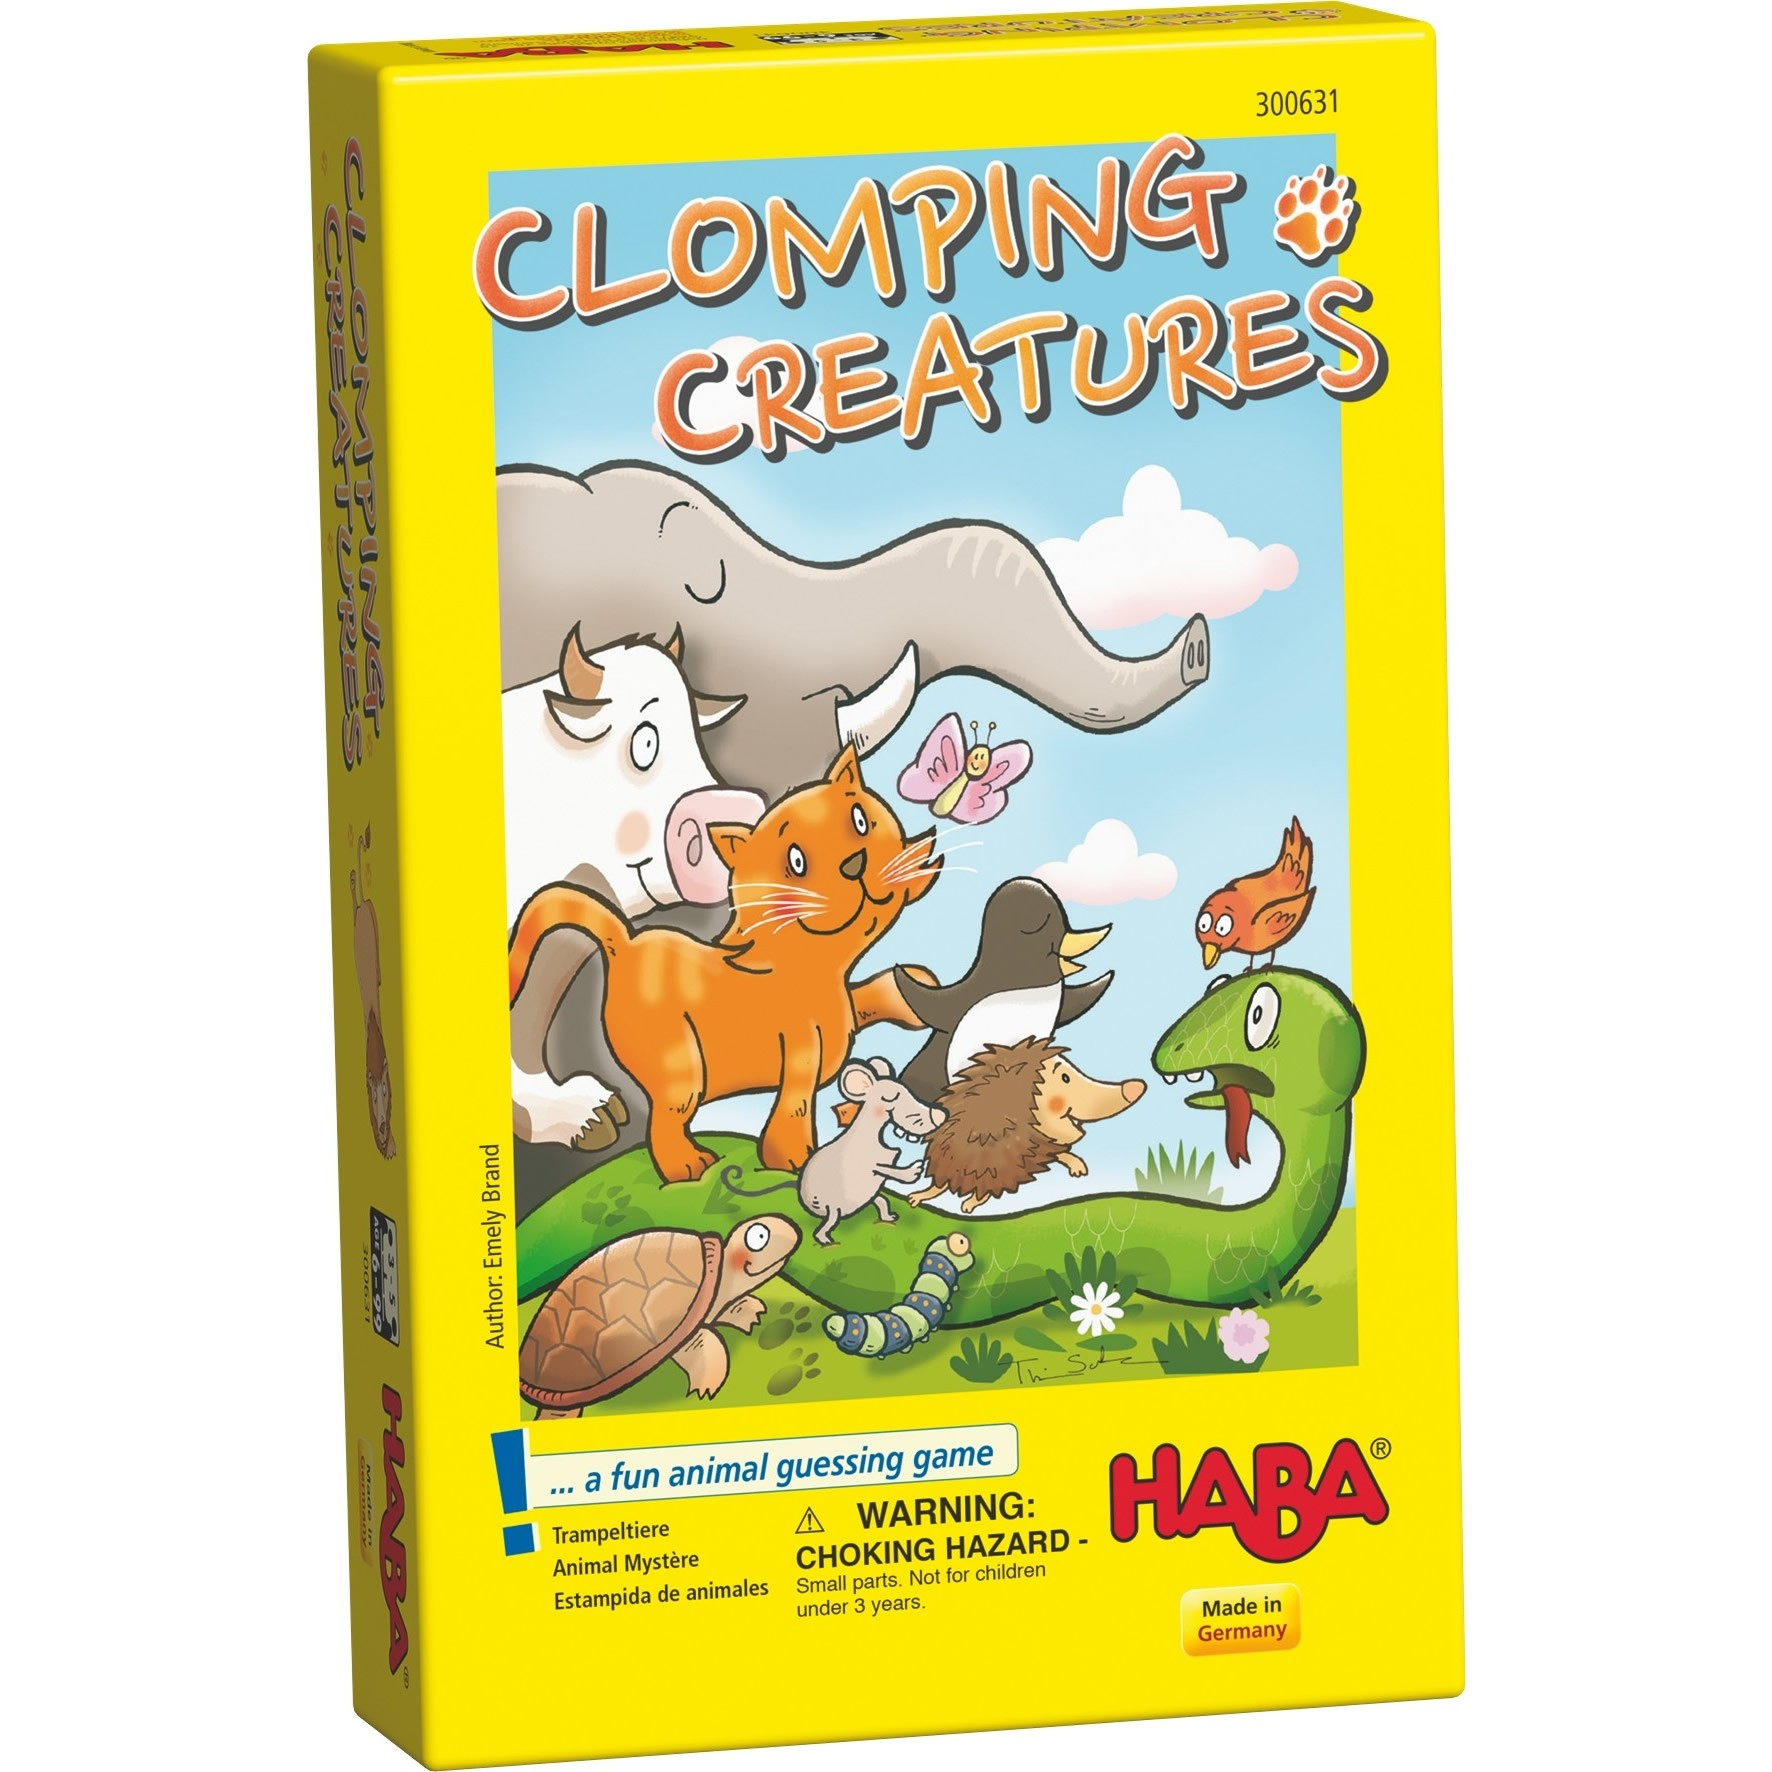 HABA Clomping Creatures - An Award Winning Guessing Game for Ages 6  (Made in Germany)